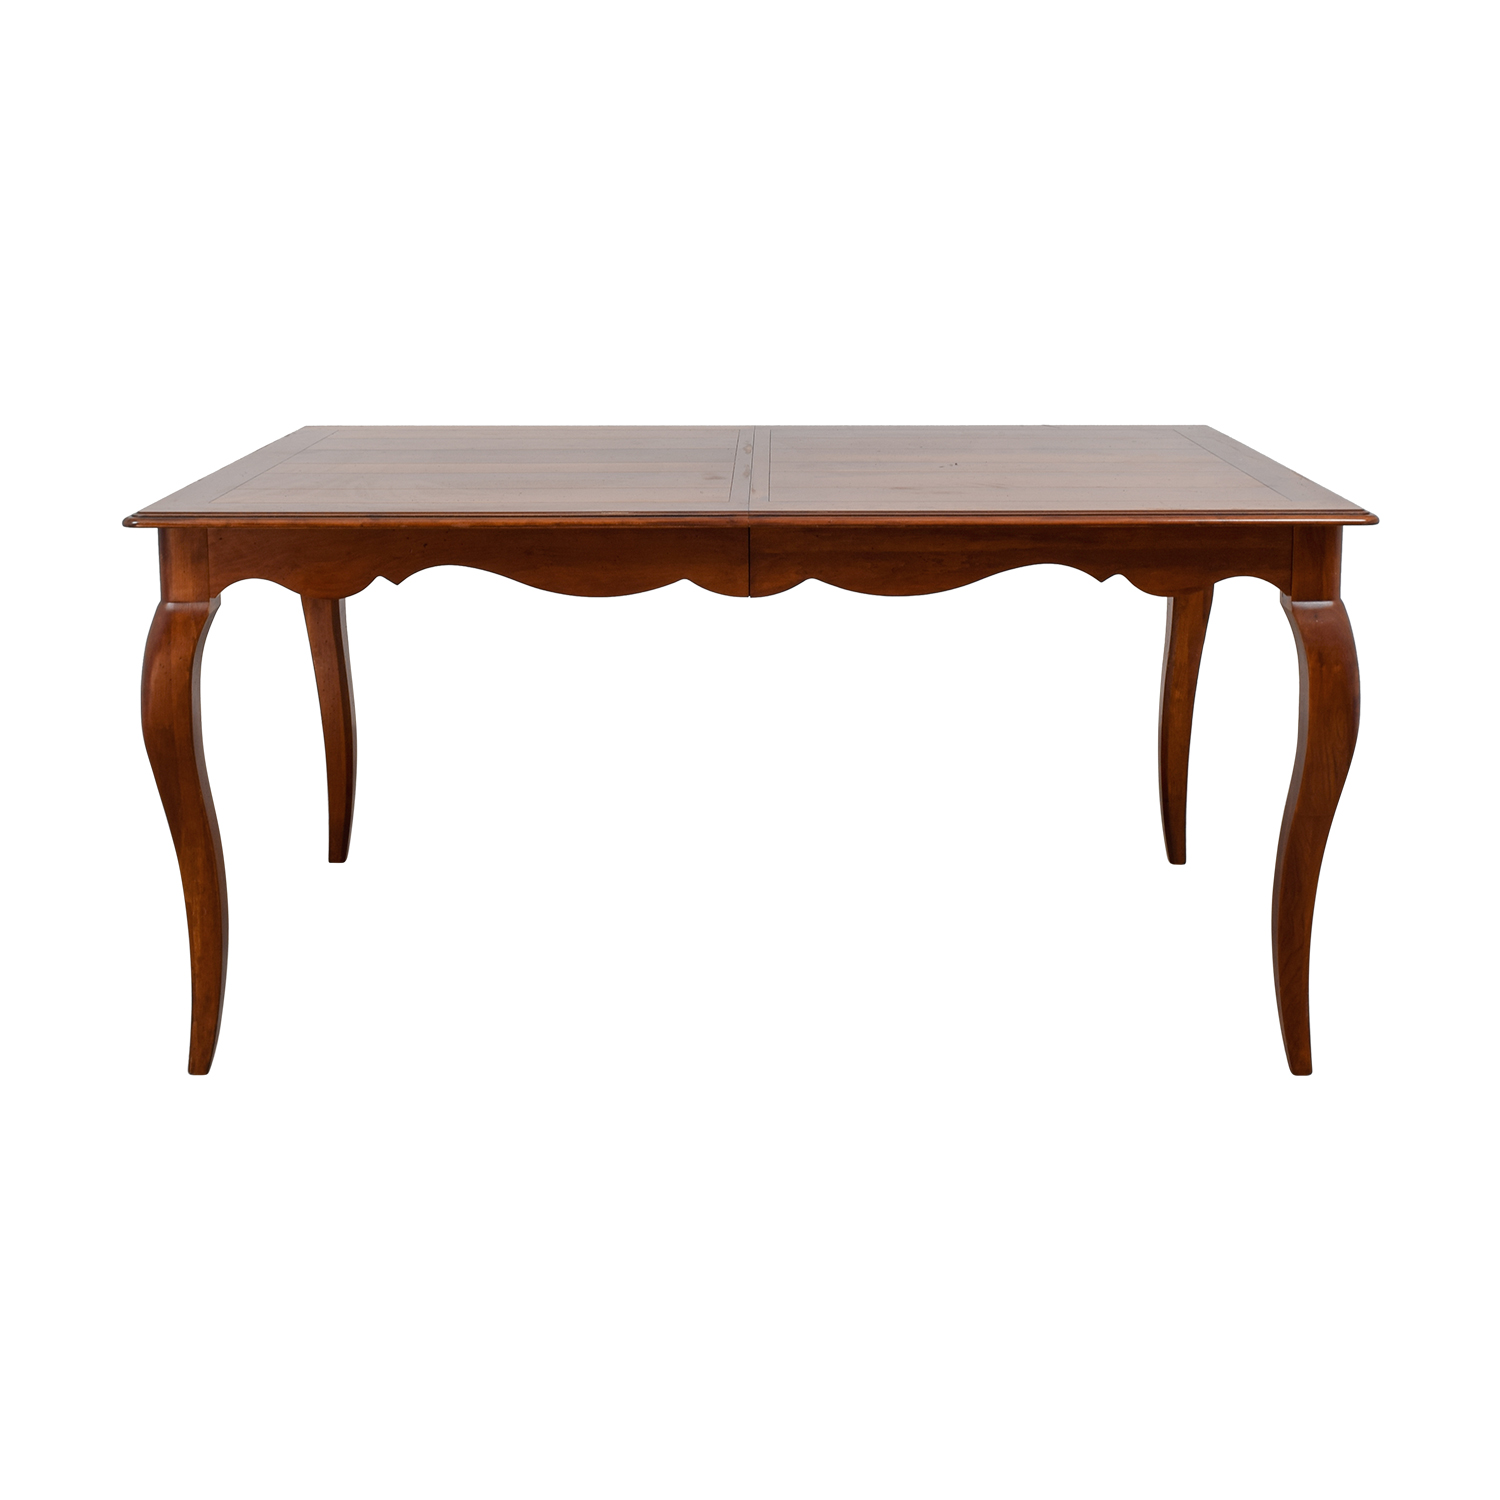 Ethan Allen Ethan Allen Juliette Wood Dovetailed Dining Table Tables